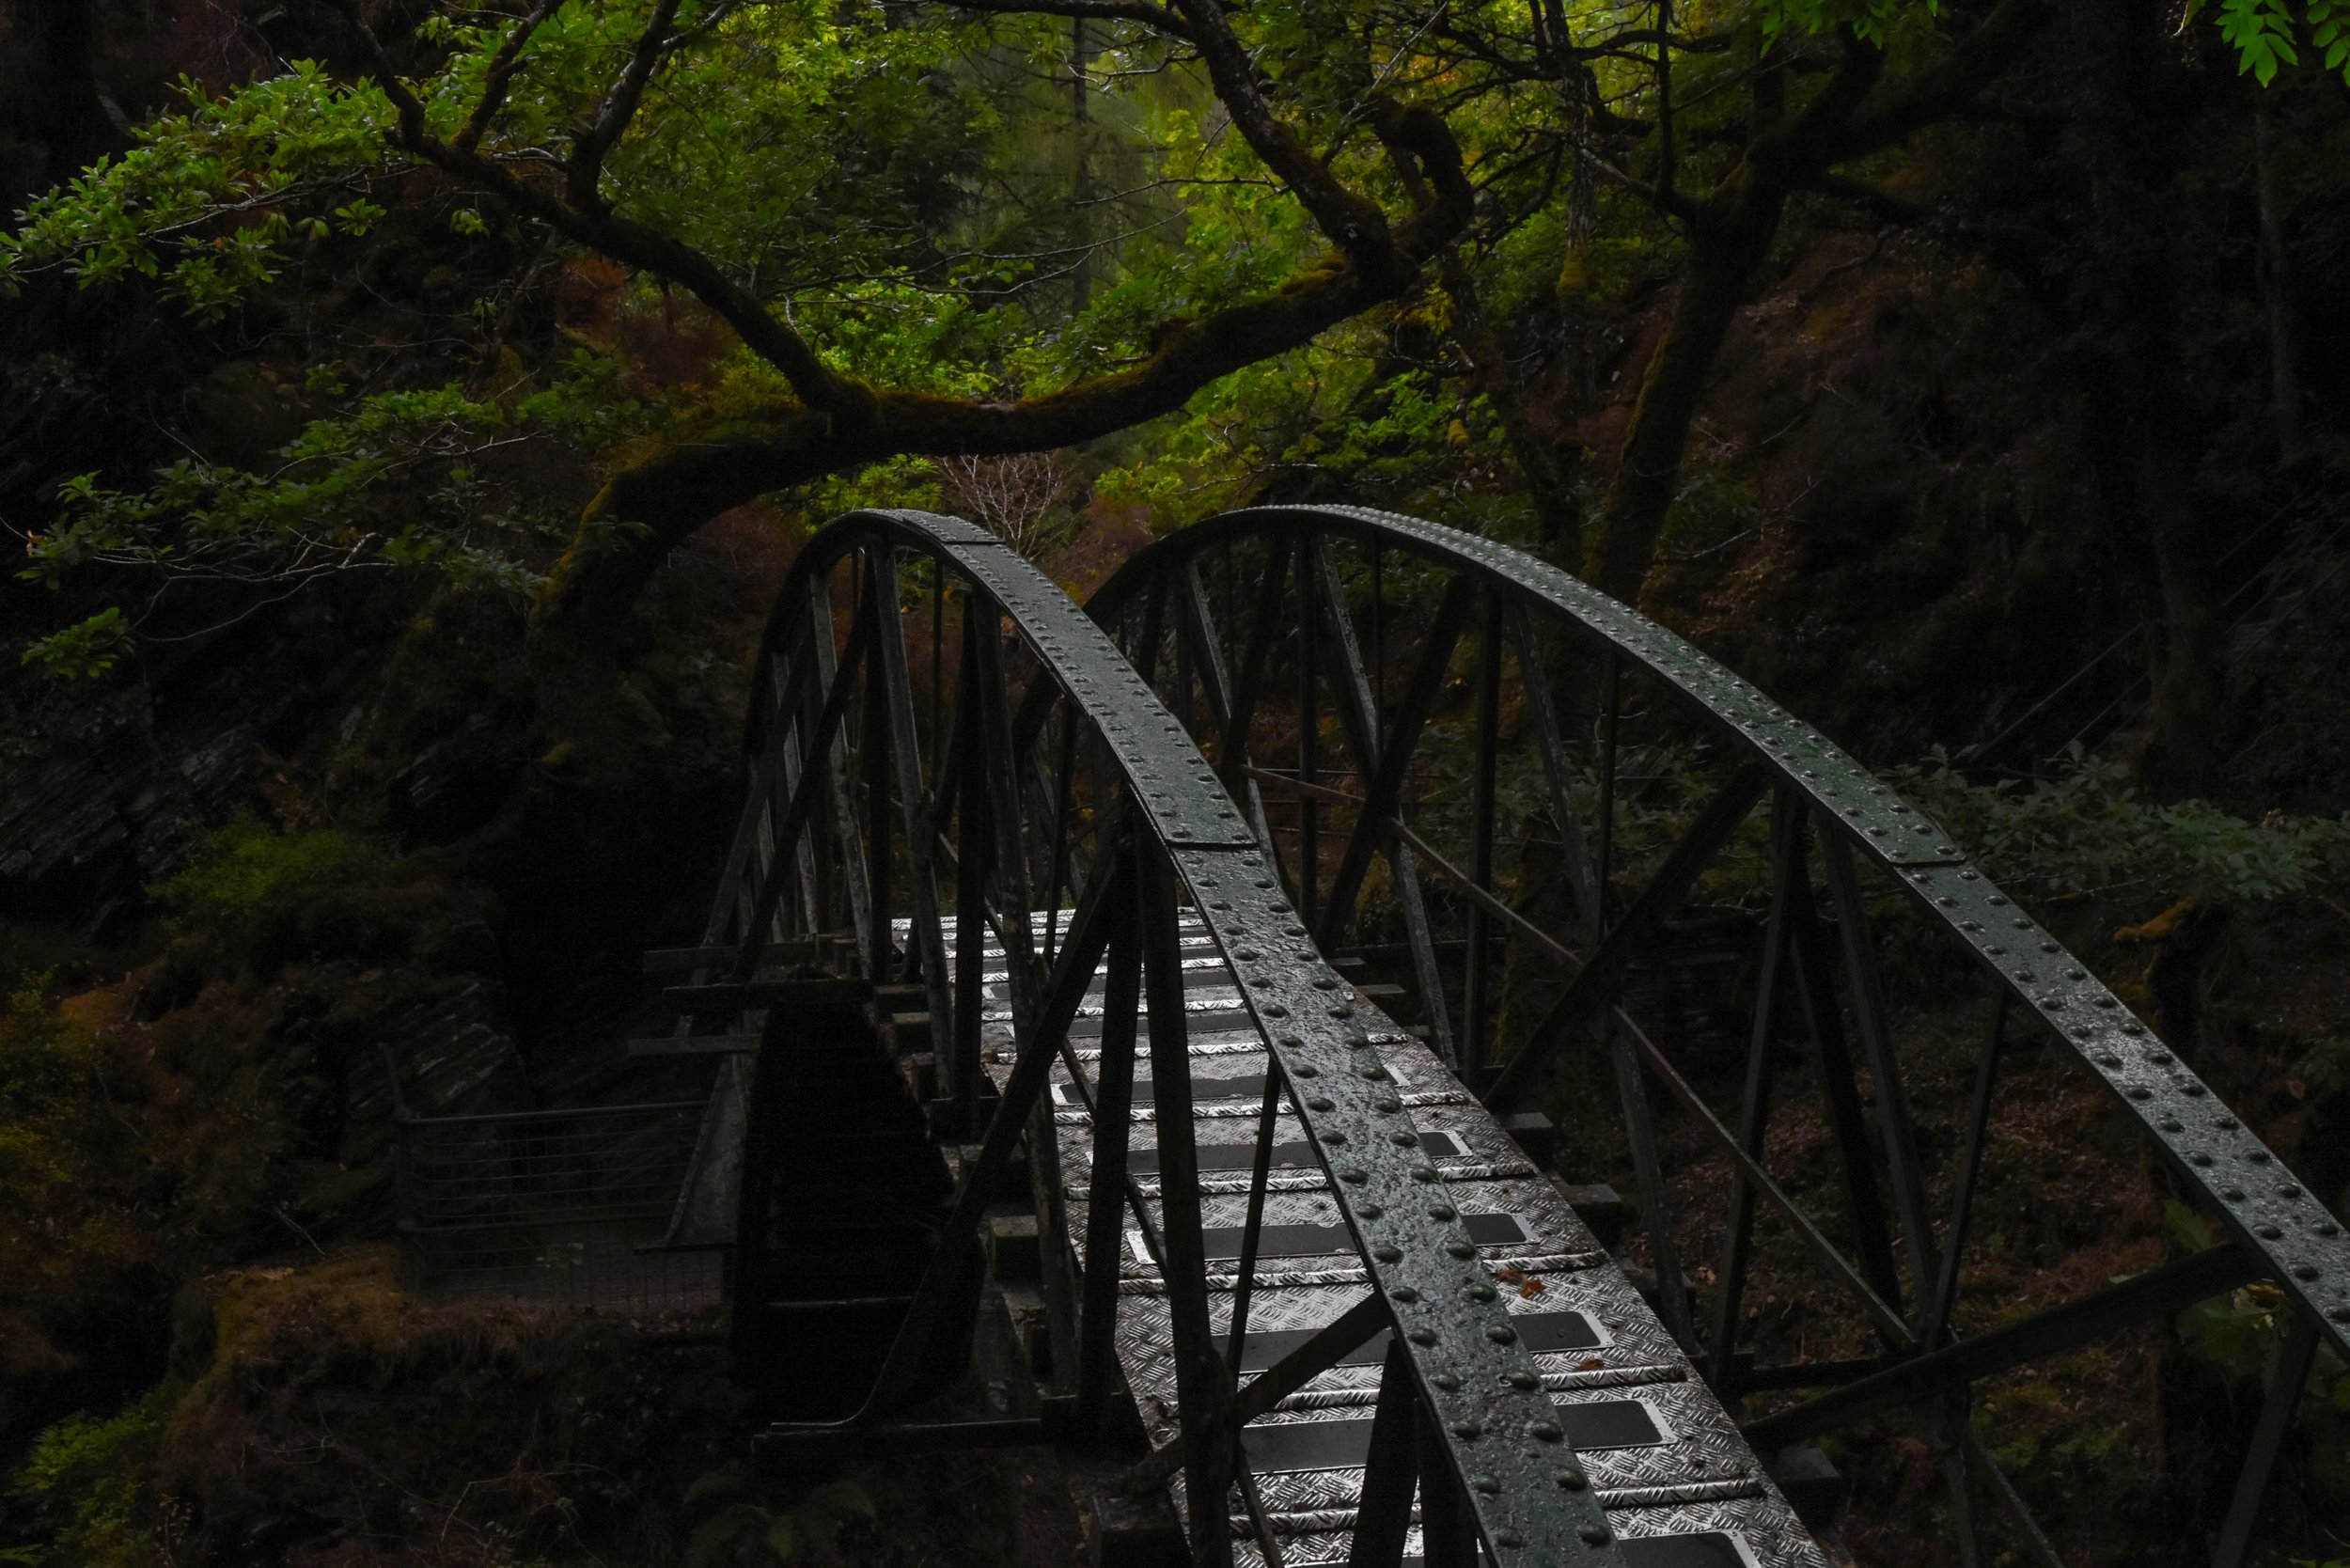 A metal footbridge spans the Afon Mynach river along the Devils Bridge Nature Trail in Ceredigion, Wales.